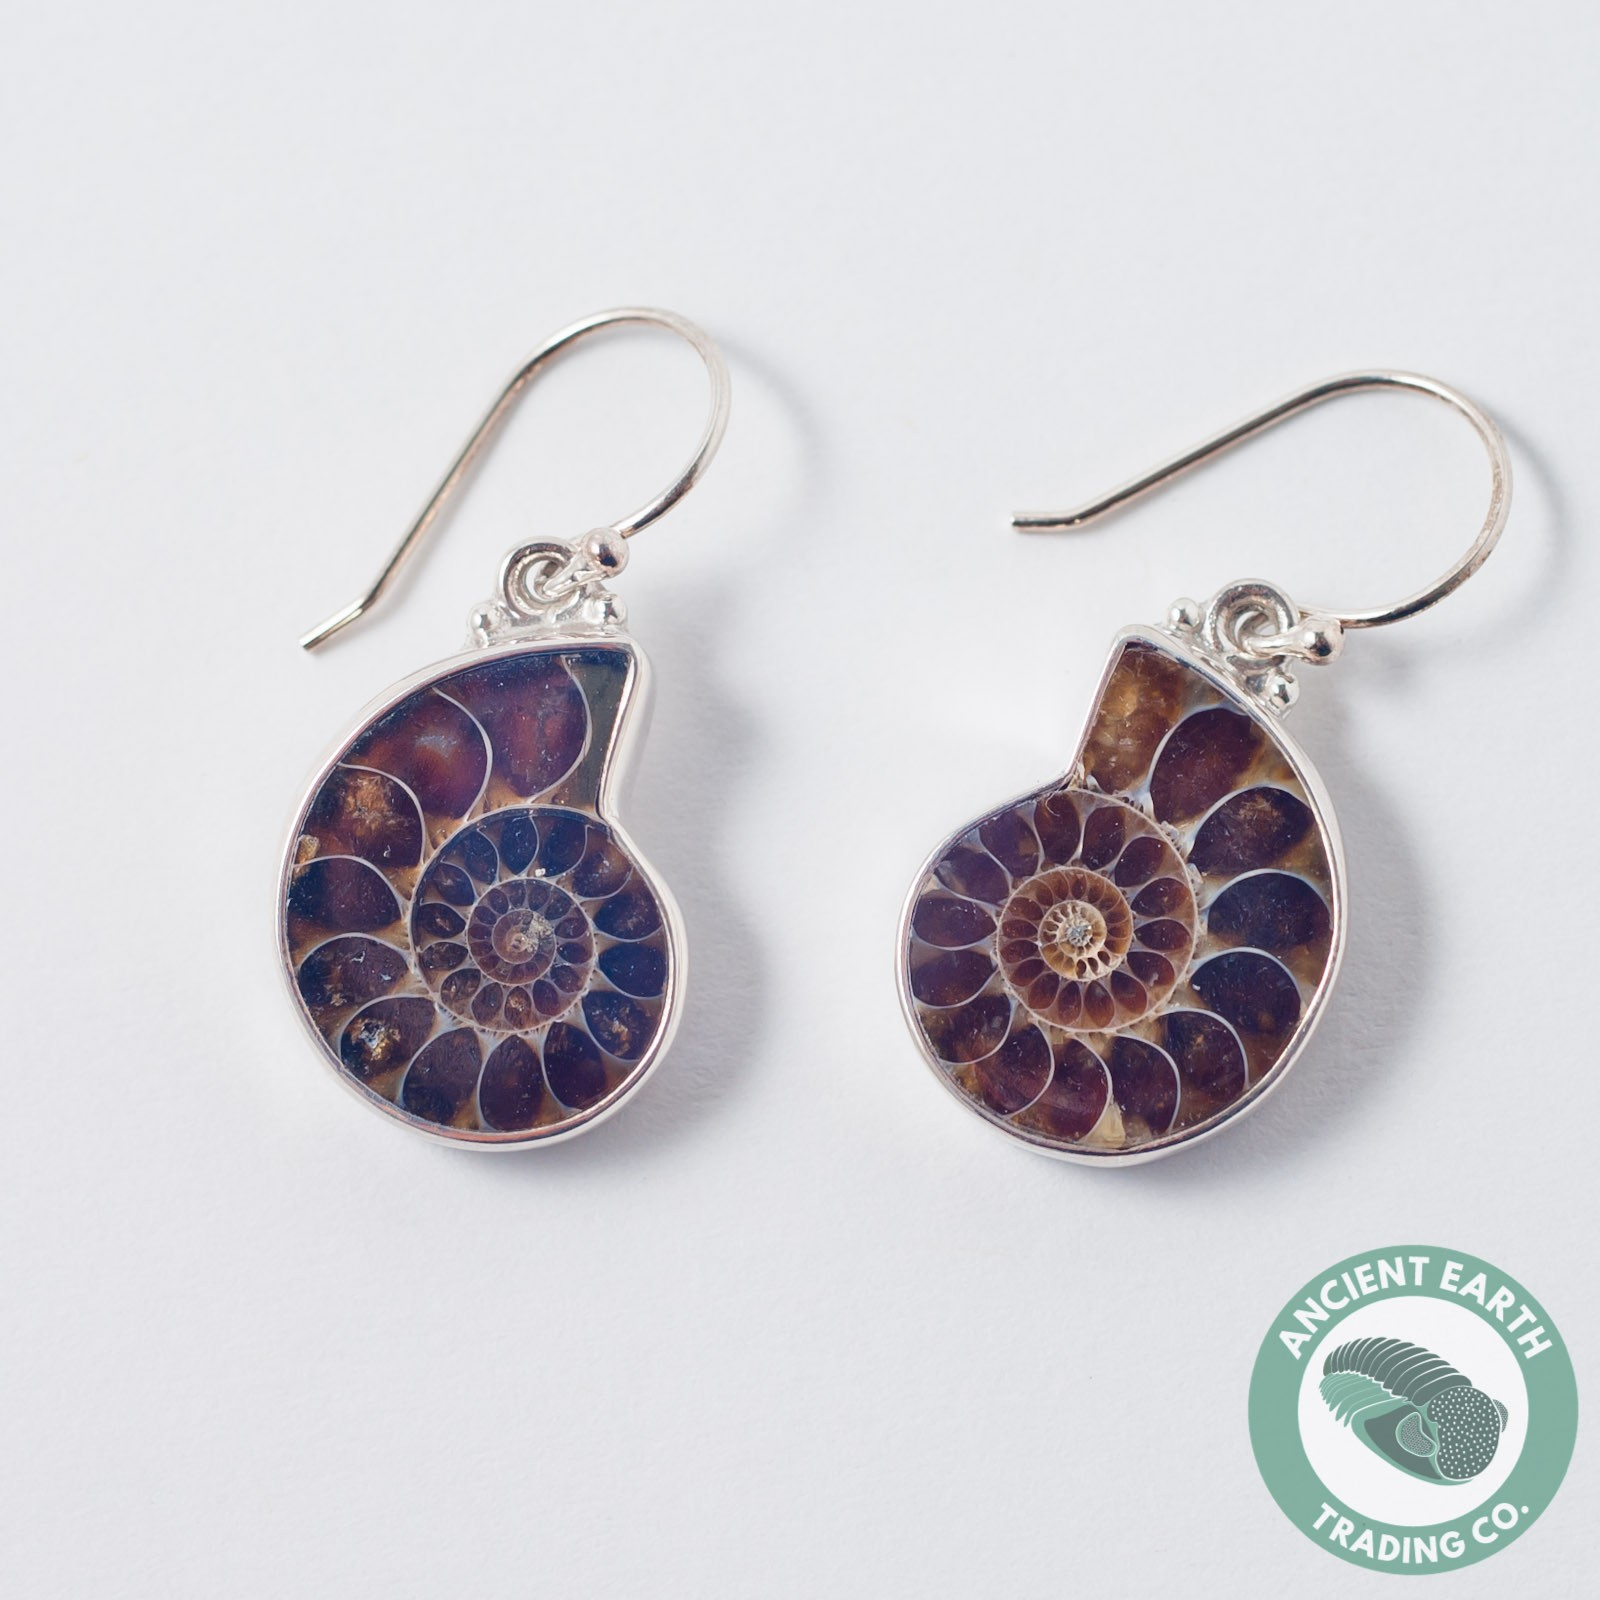 Ammonite Fossil Earring Pair 20 mm .925 Sterling Silver